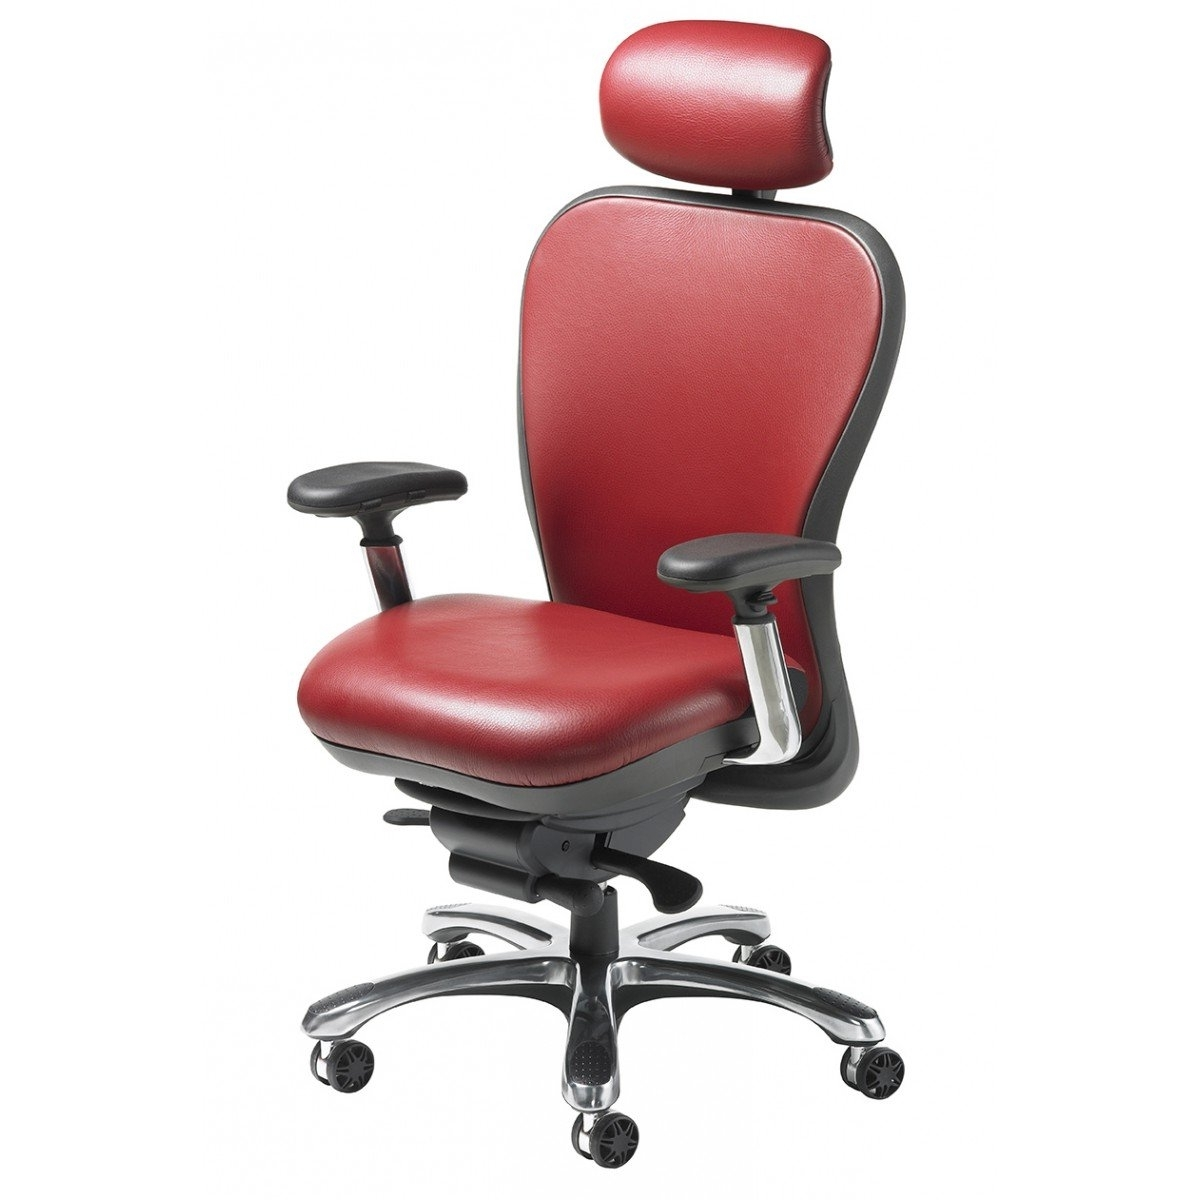 2018 Petite Executive Office Chairs For Cxo Executive Leather Office Chair (View 8 of 20)